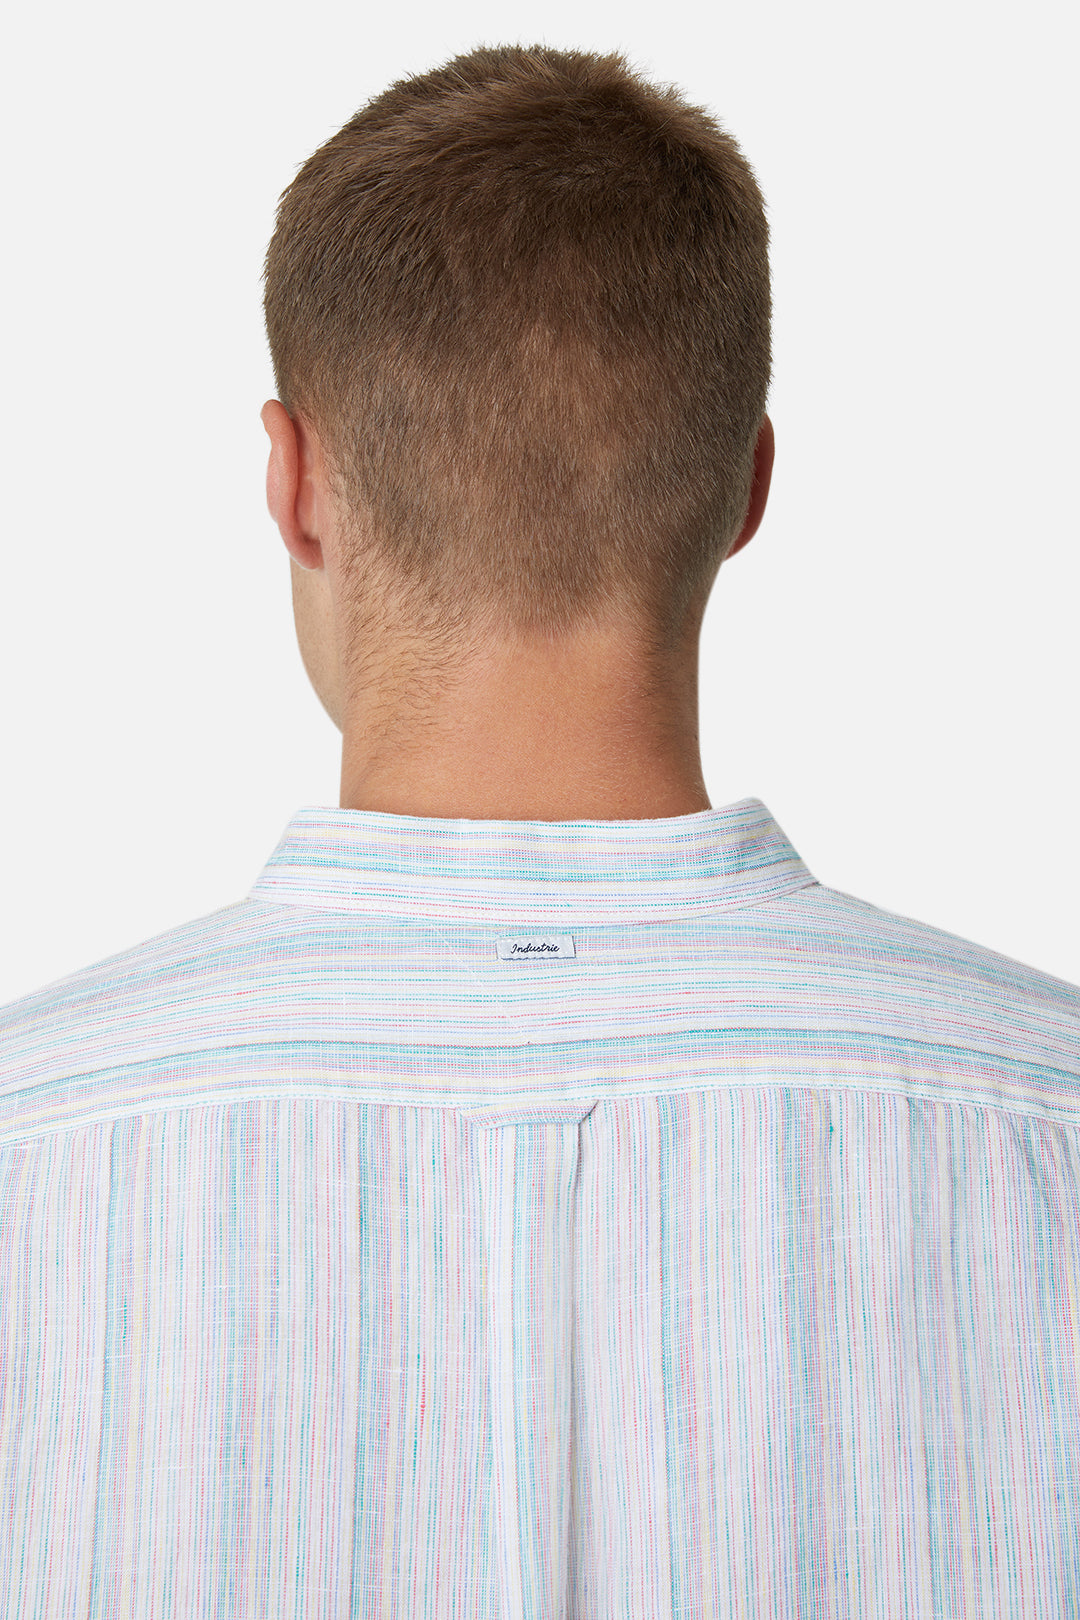 The Avignon Shirt - Multi